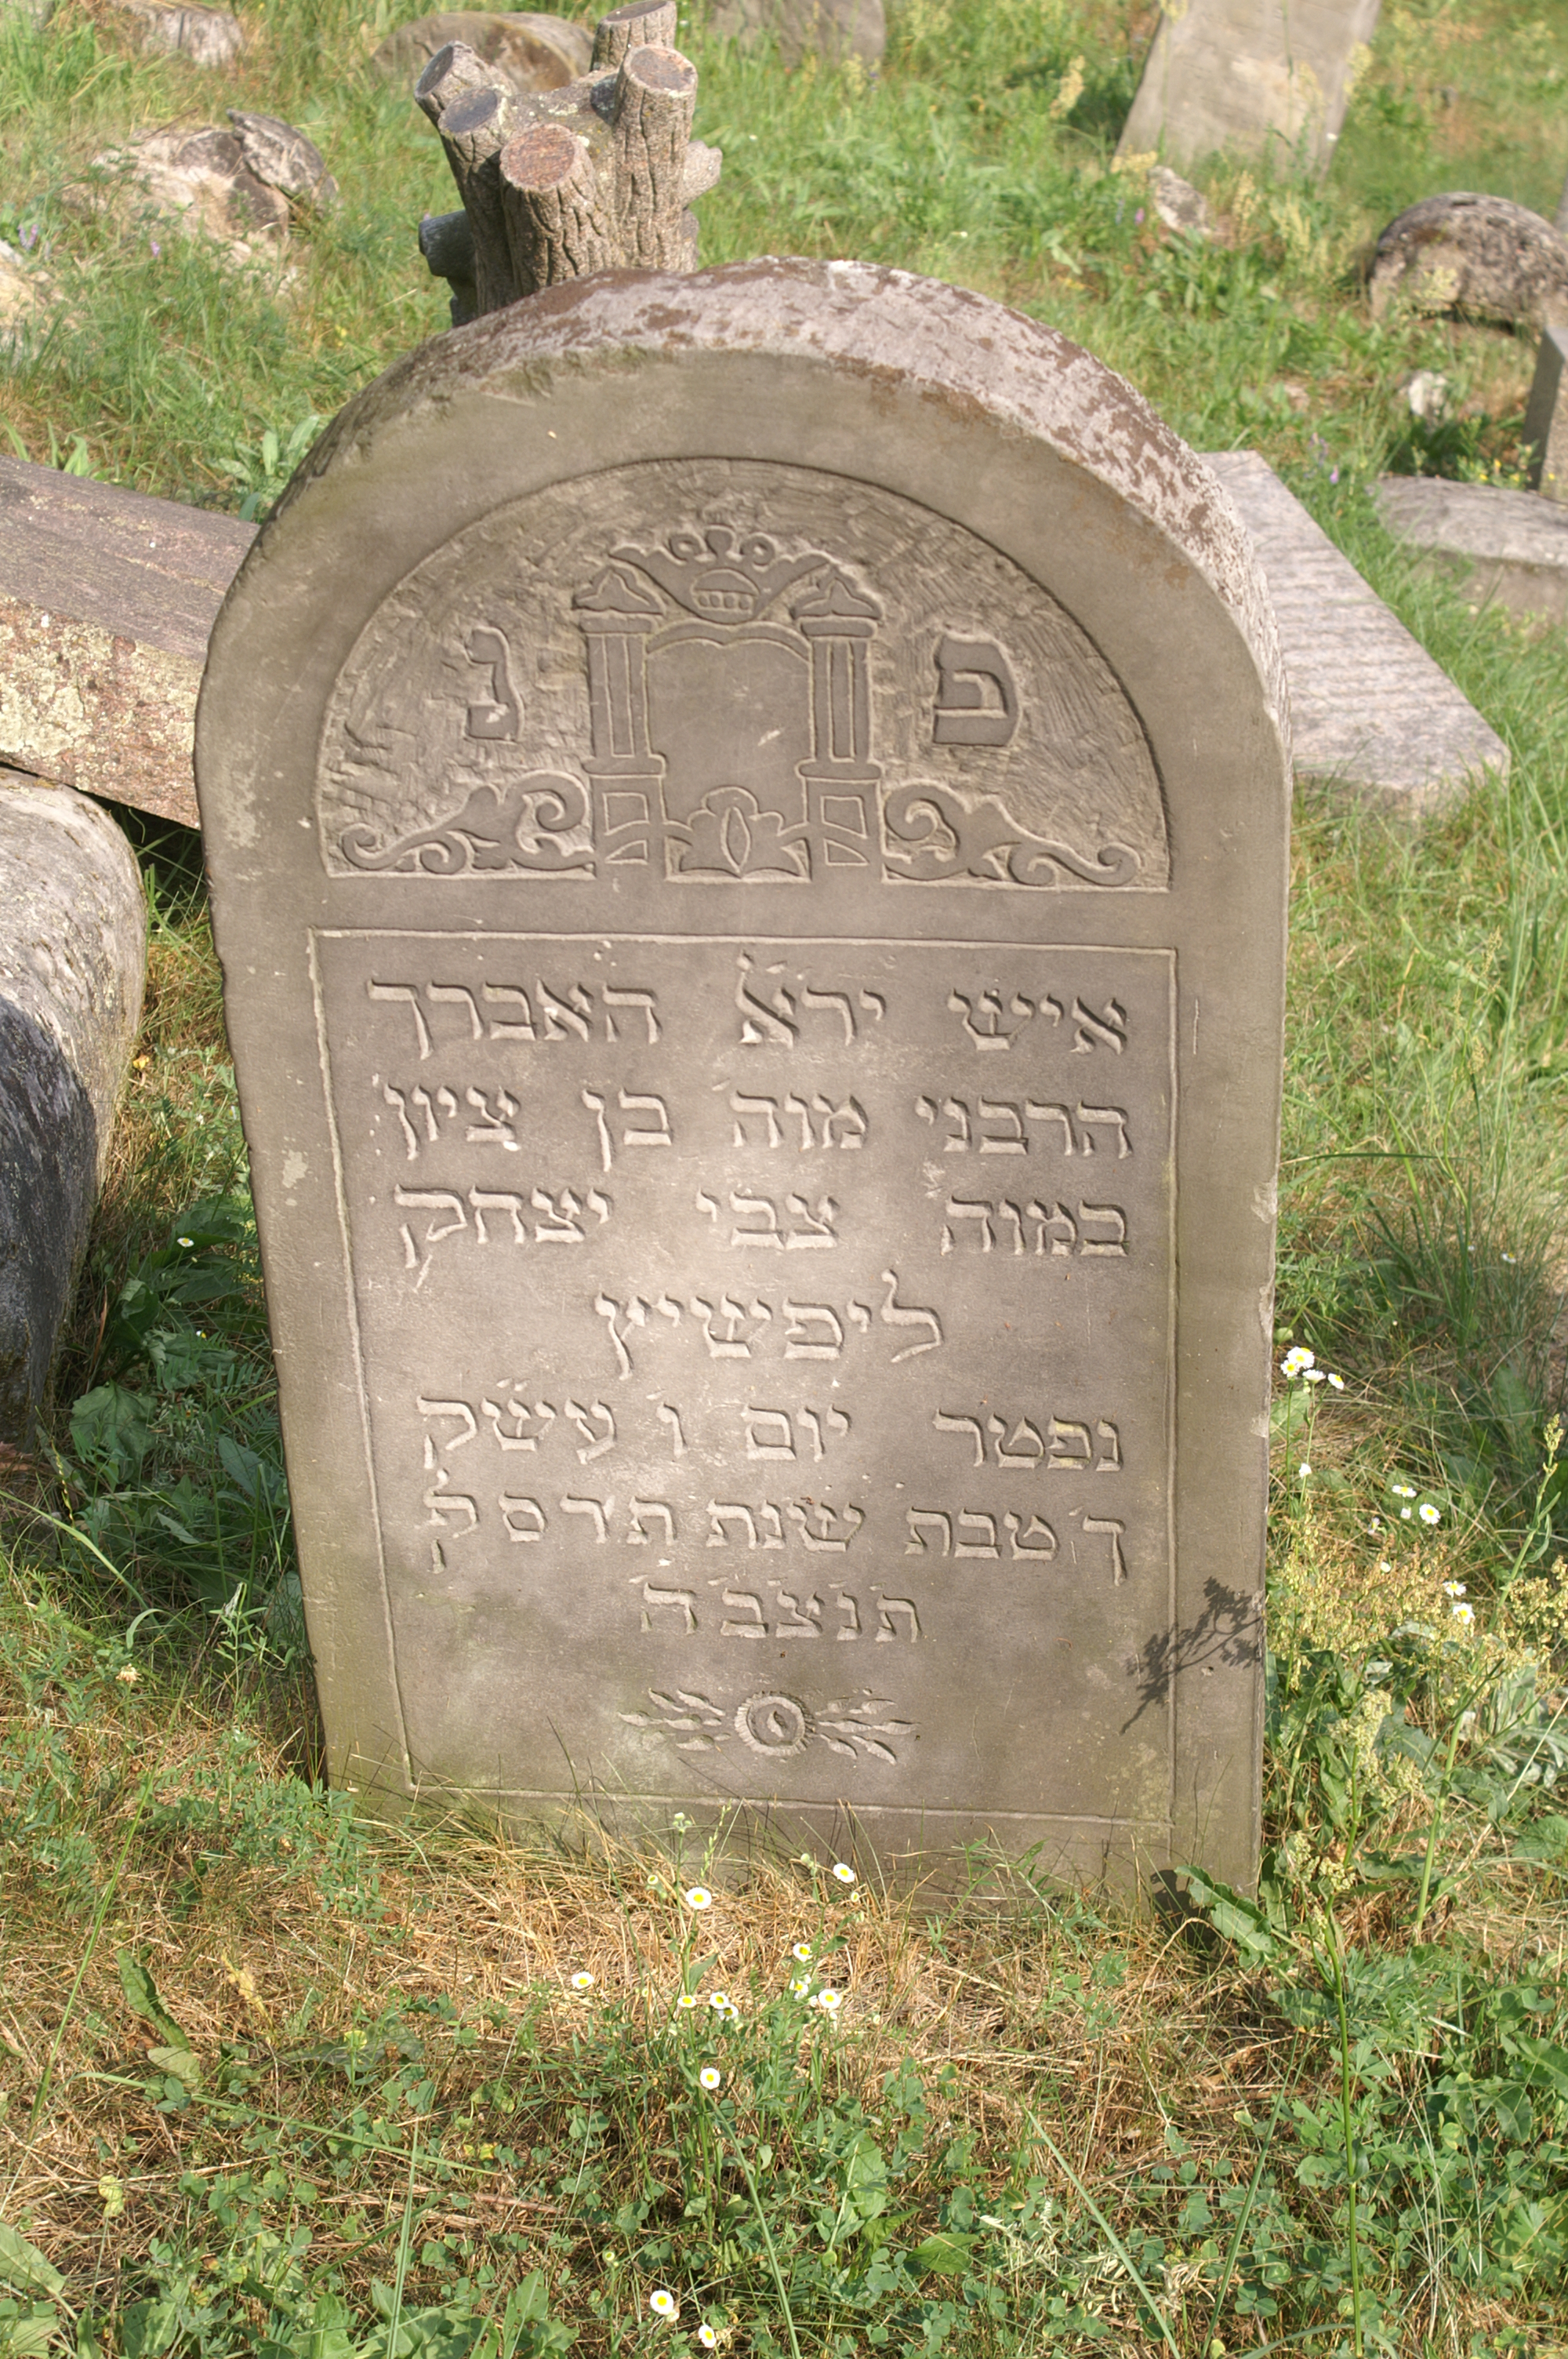 The inscription on the tombstone. Epitaphs on the monument